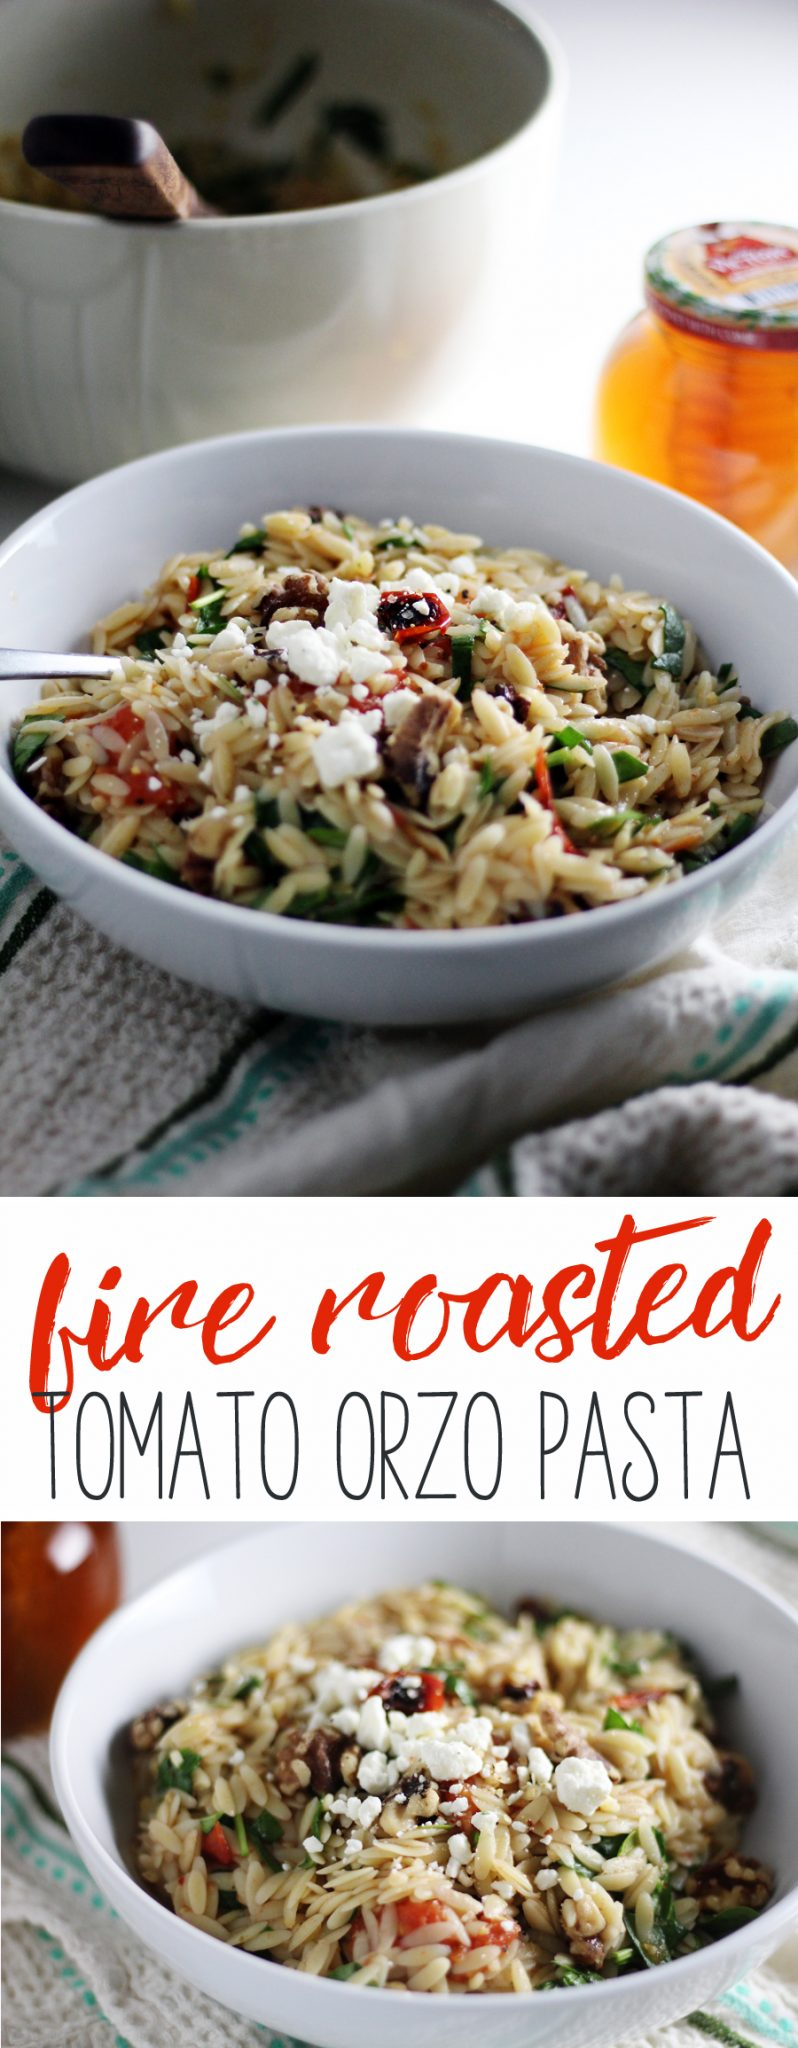 Fire roasted tomatoes, walnuts, fresh spinach are tossed with orzo pasta and dressed with a simple lemon + honey dressing.